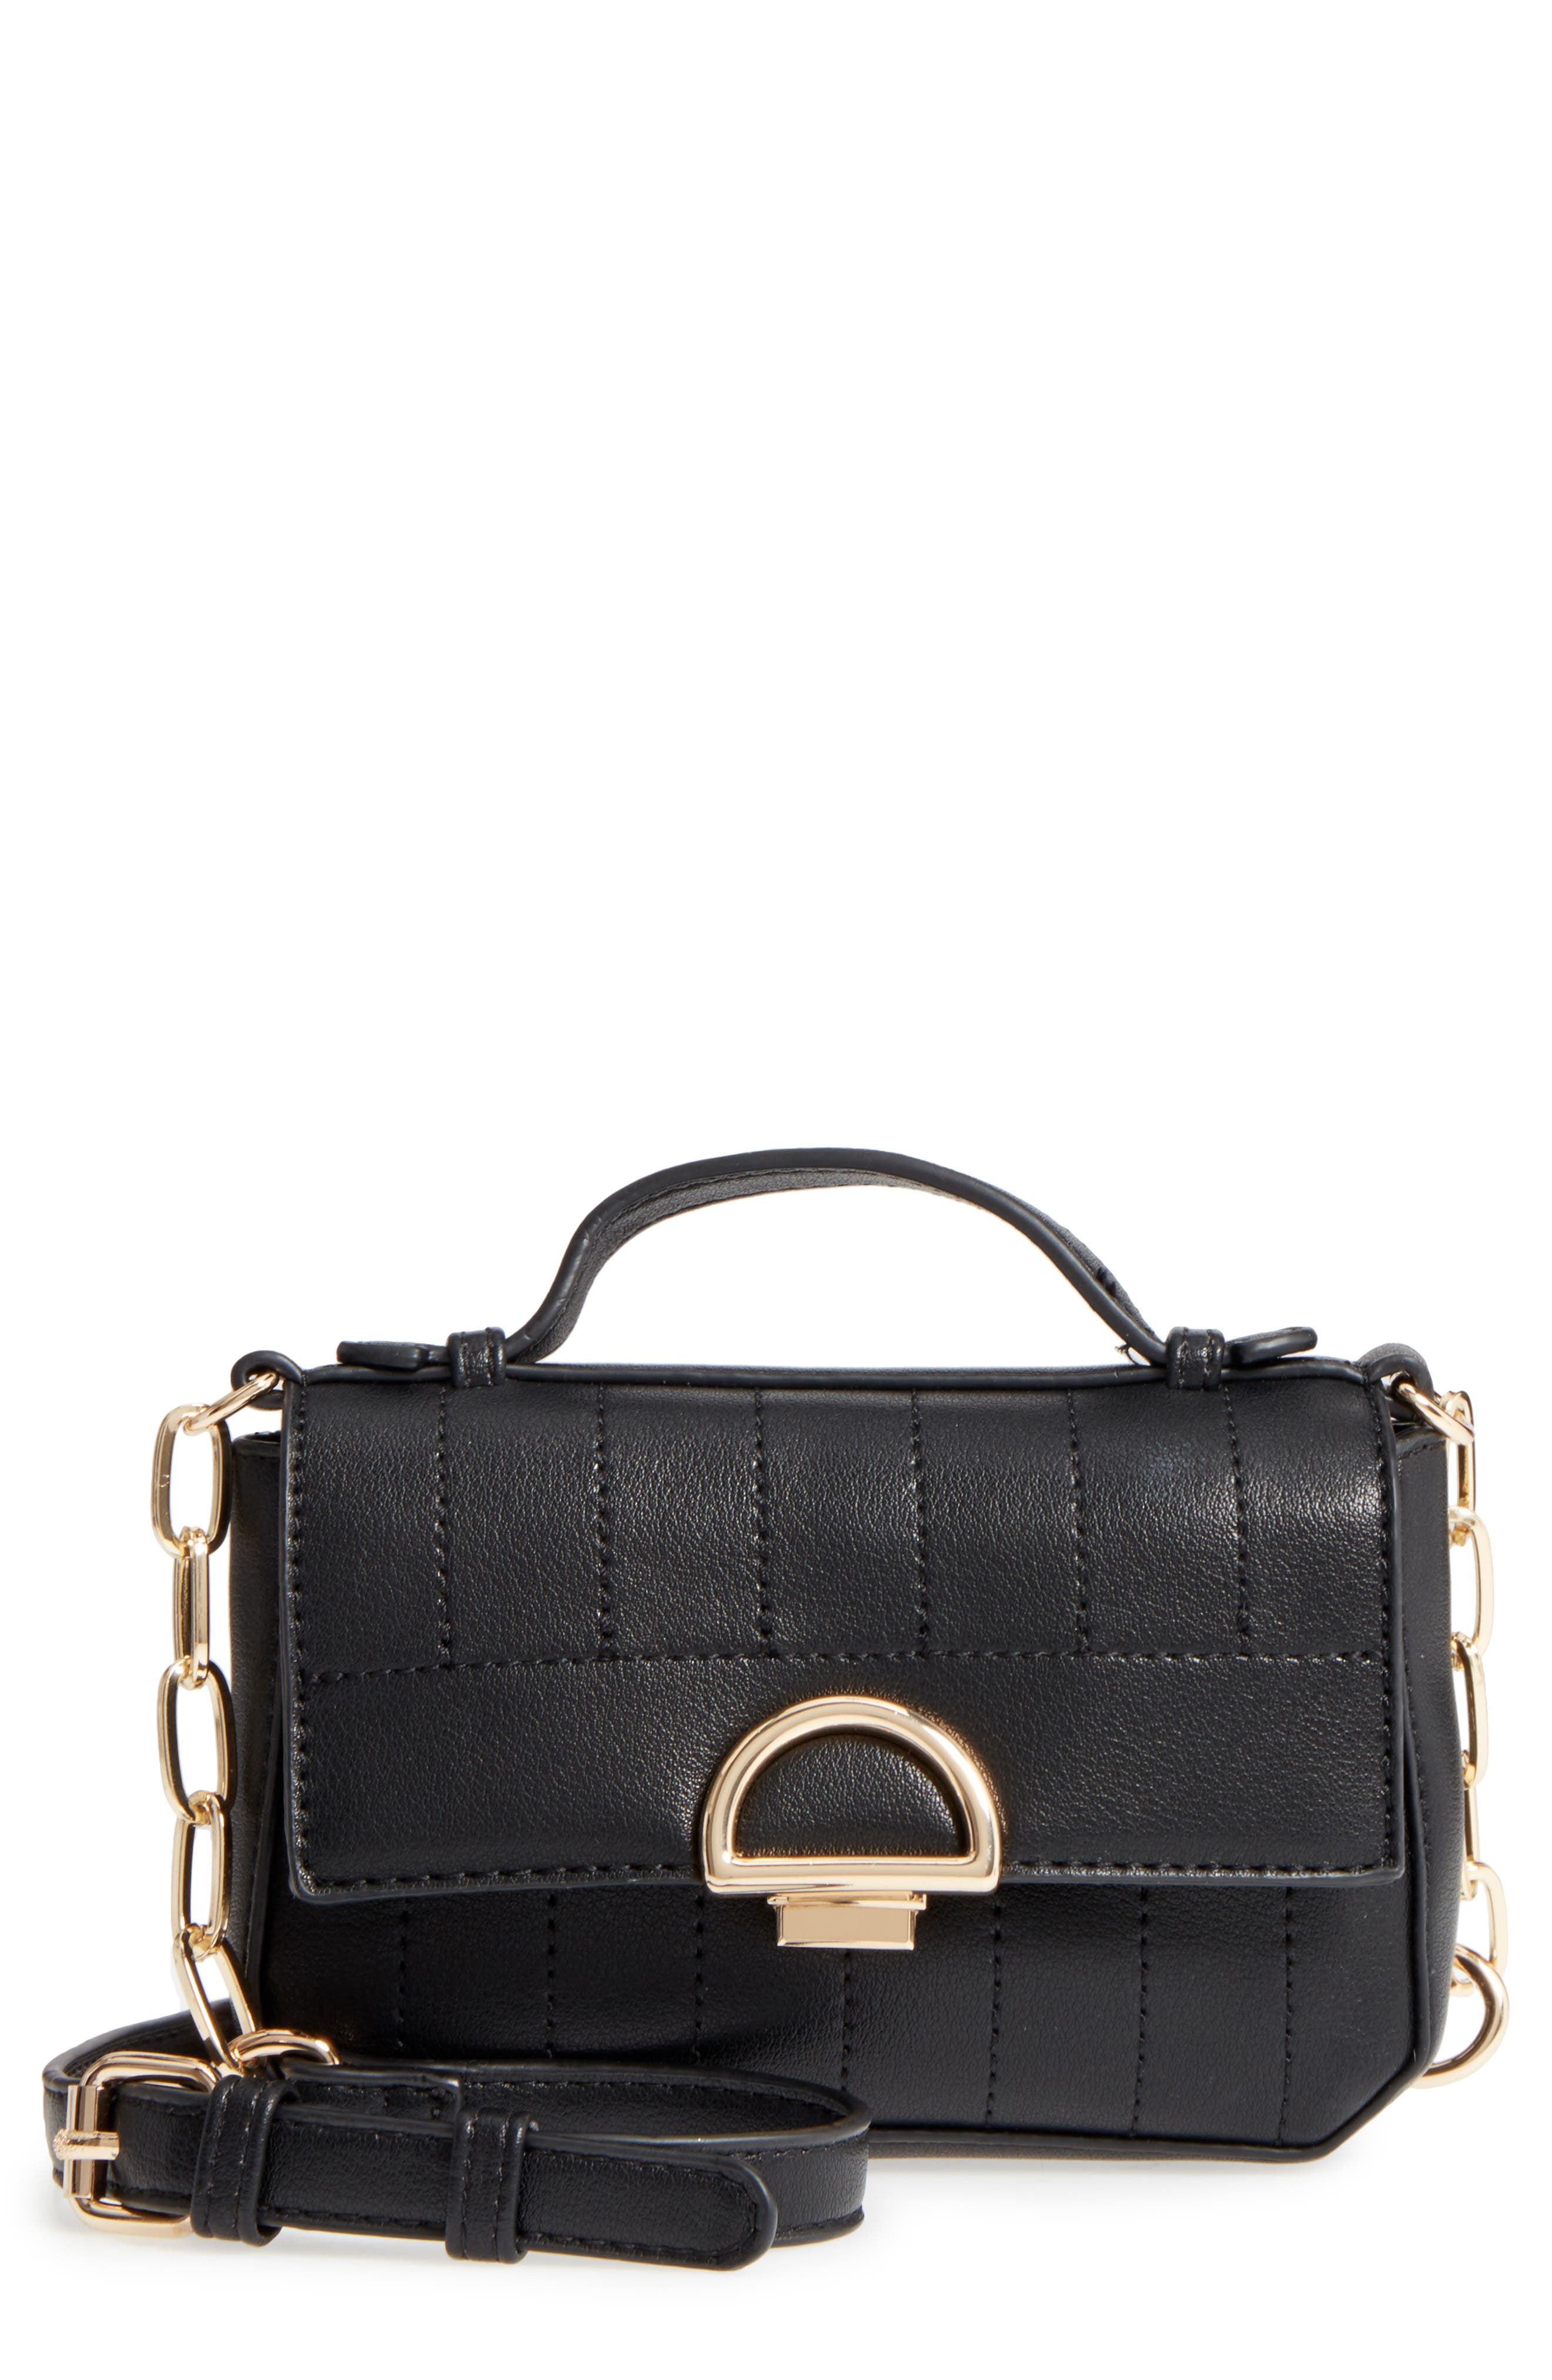 Alternate Image 1 Selected - Sole Society Kelsee Crossbody Bag